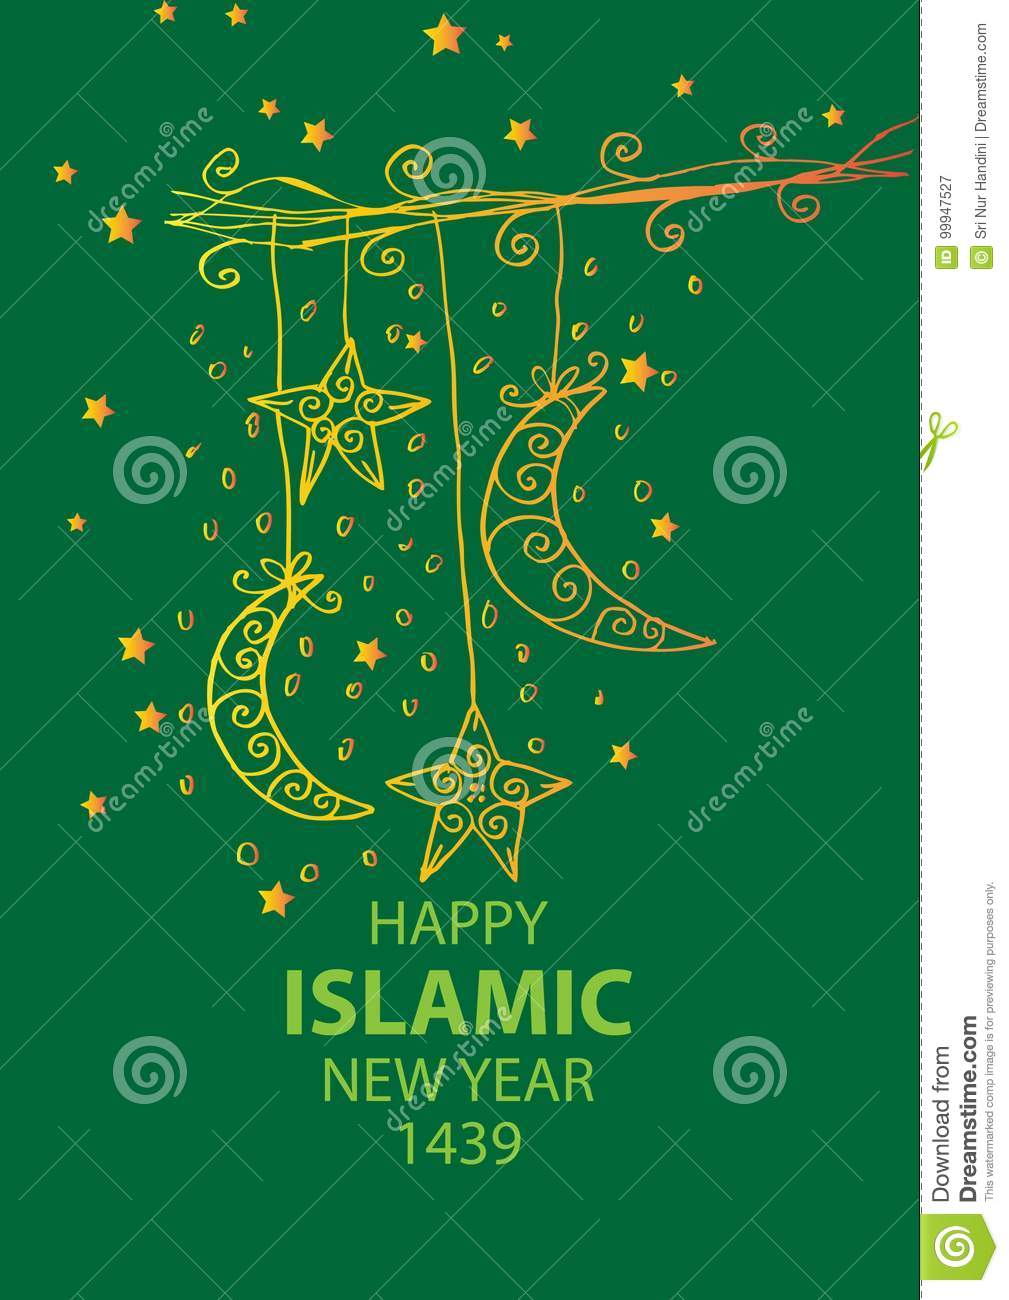 Happy islamic new year 1439 stock illustration illustration of download happy islamic new year 1439 stock illustration illustration of card greeting 99947527 m4hsunfo